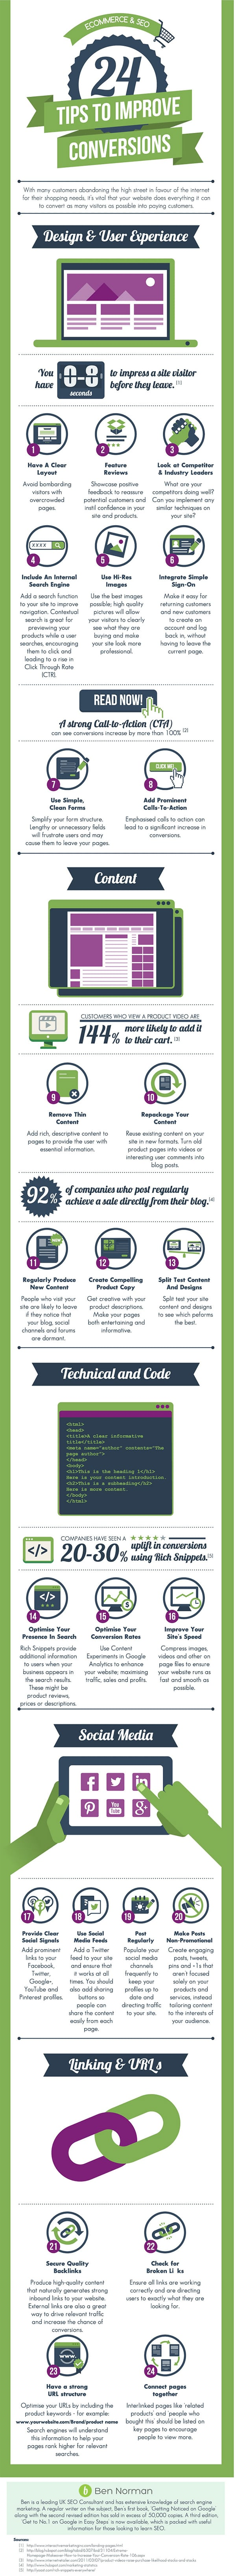 24 eCommerce website tips infographic